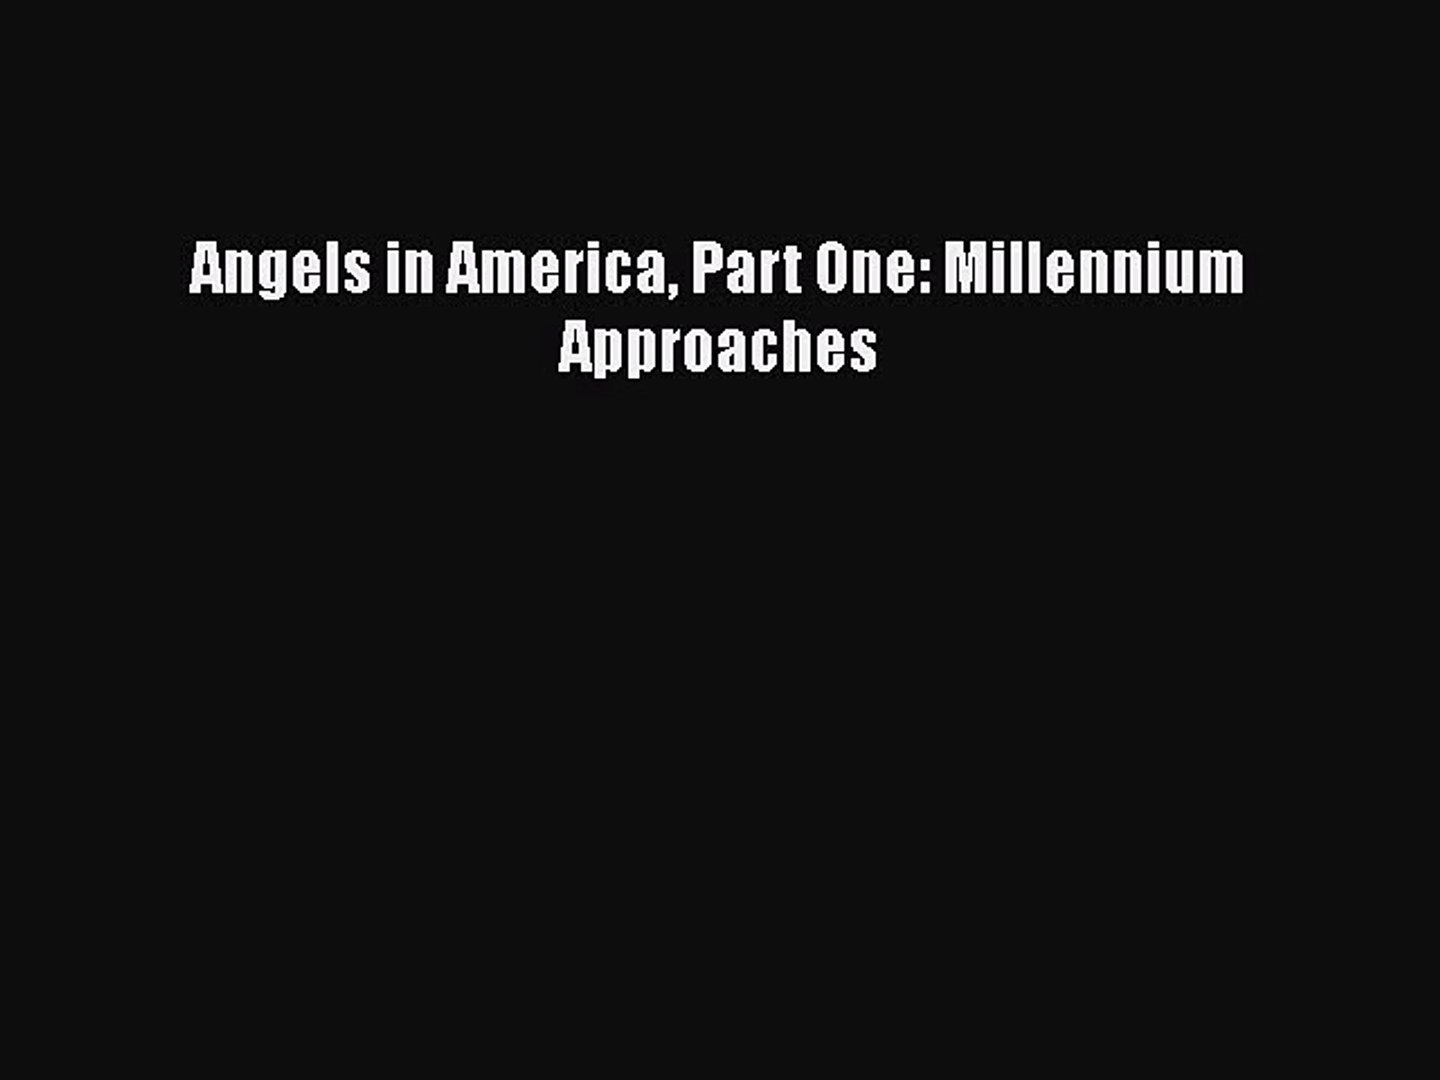 Download Angels in America Part One: Millennium Approaches Ebook Online